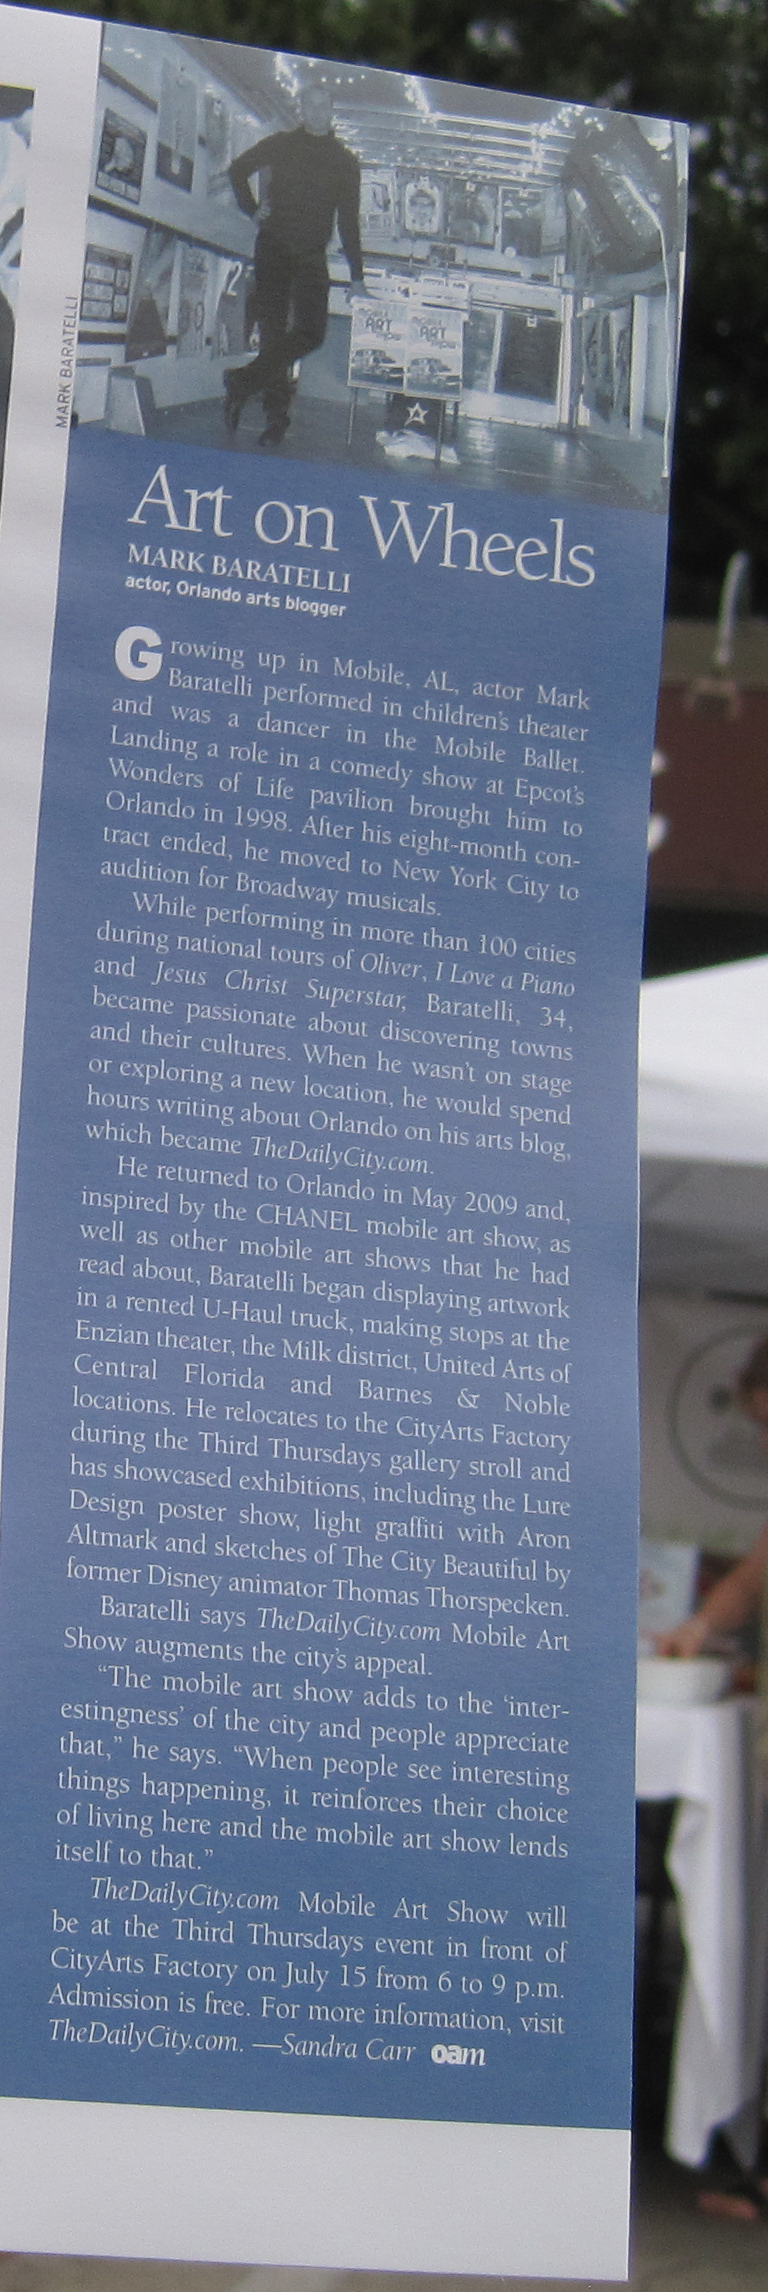 Orlando Arts Magazine feature on Mark Baratelli & TheDailyCity.com Mobile Art Show